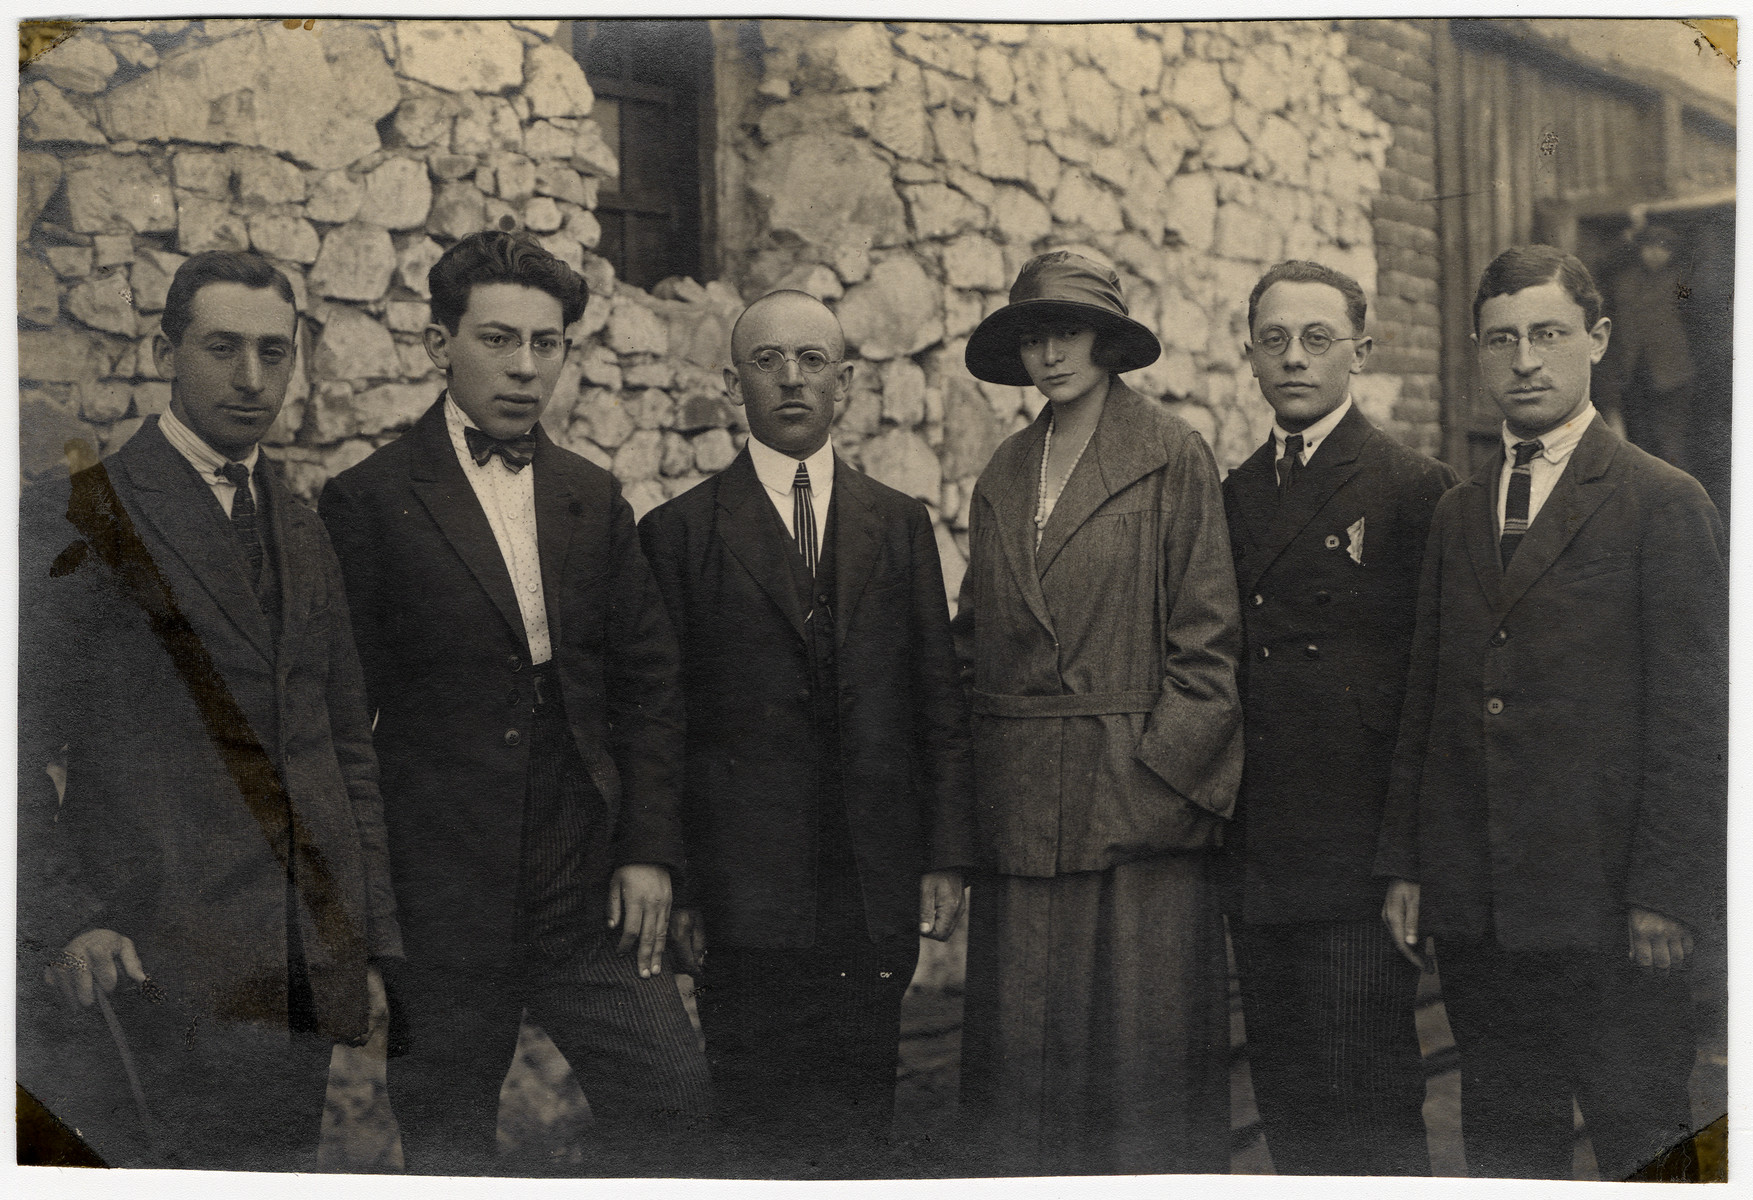 Group portrait of young adults in Belgium.  Among those pictured is Samuel Glasberg (second from right).